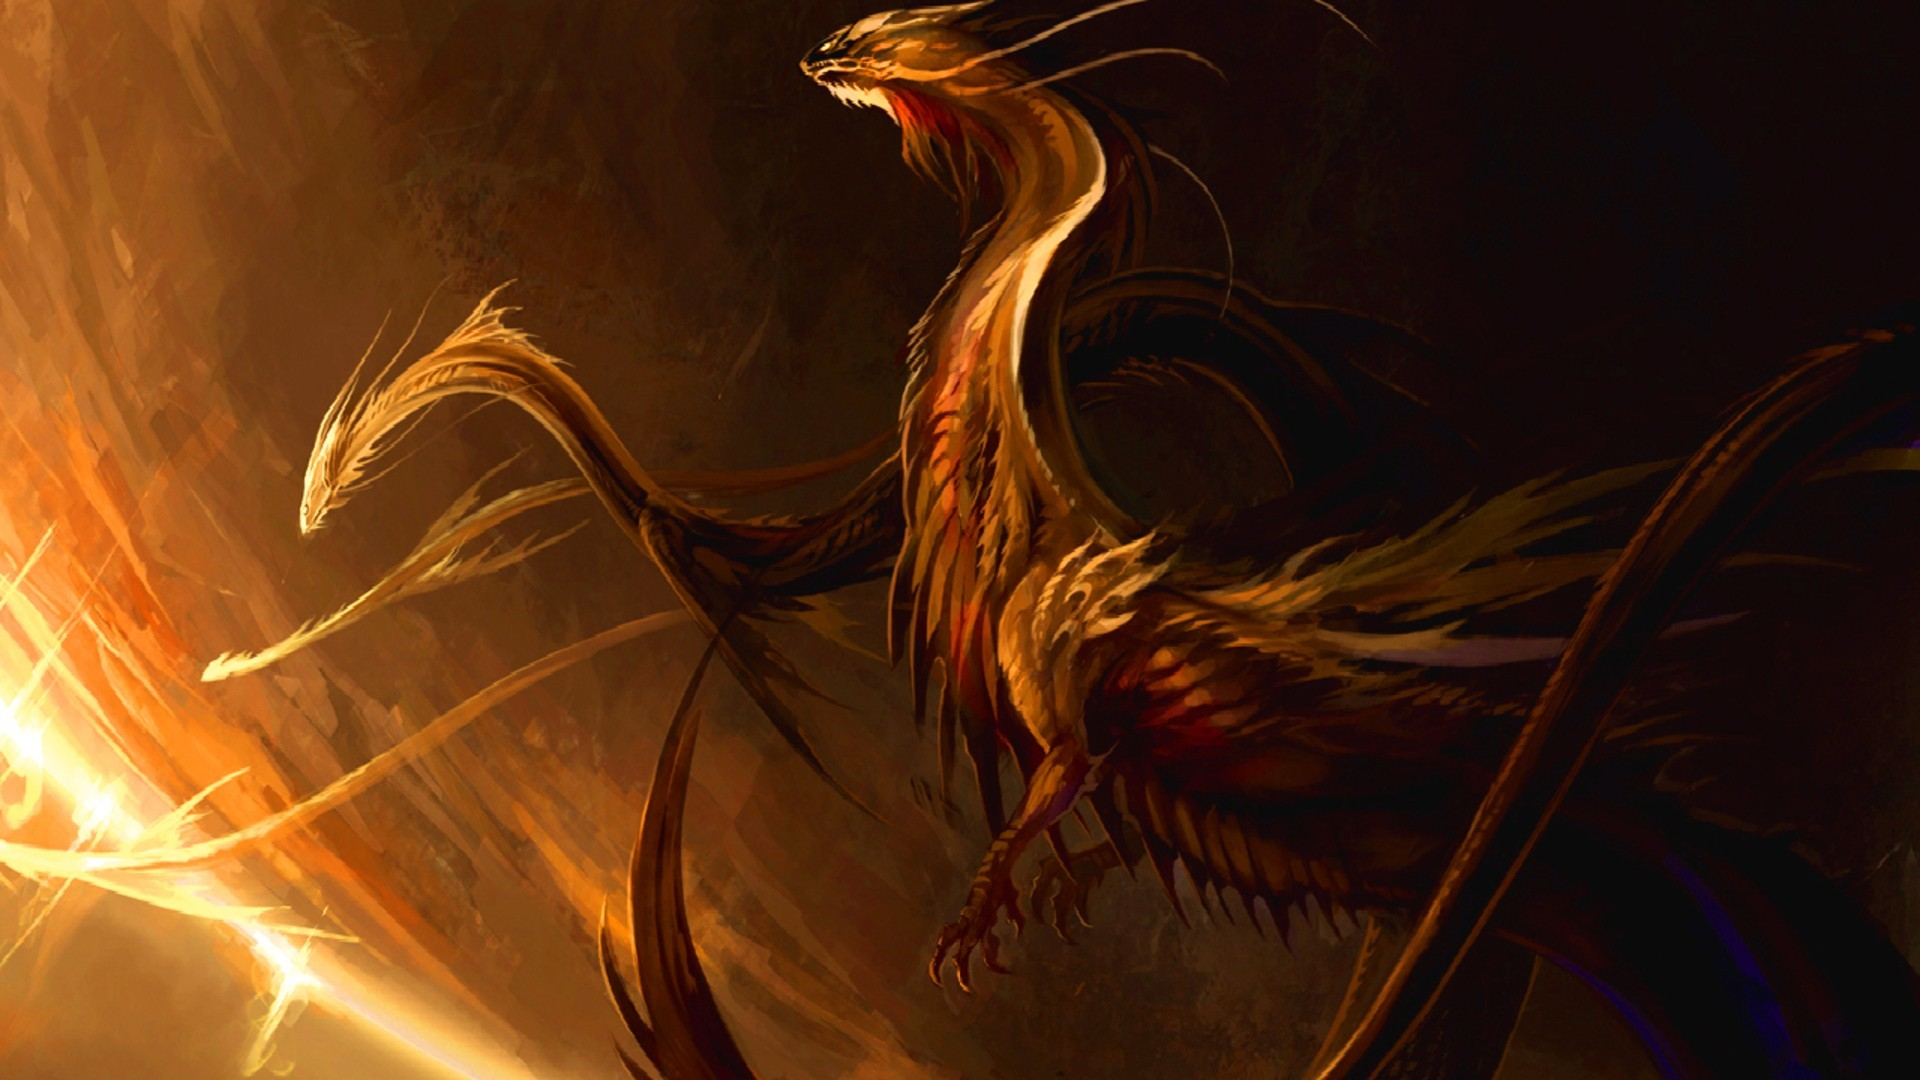 Dragons digital art 3d HD Wallpaper